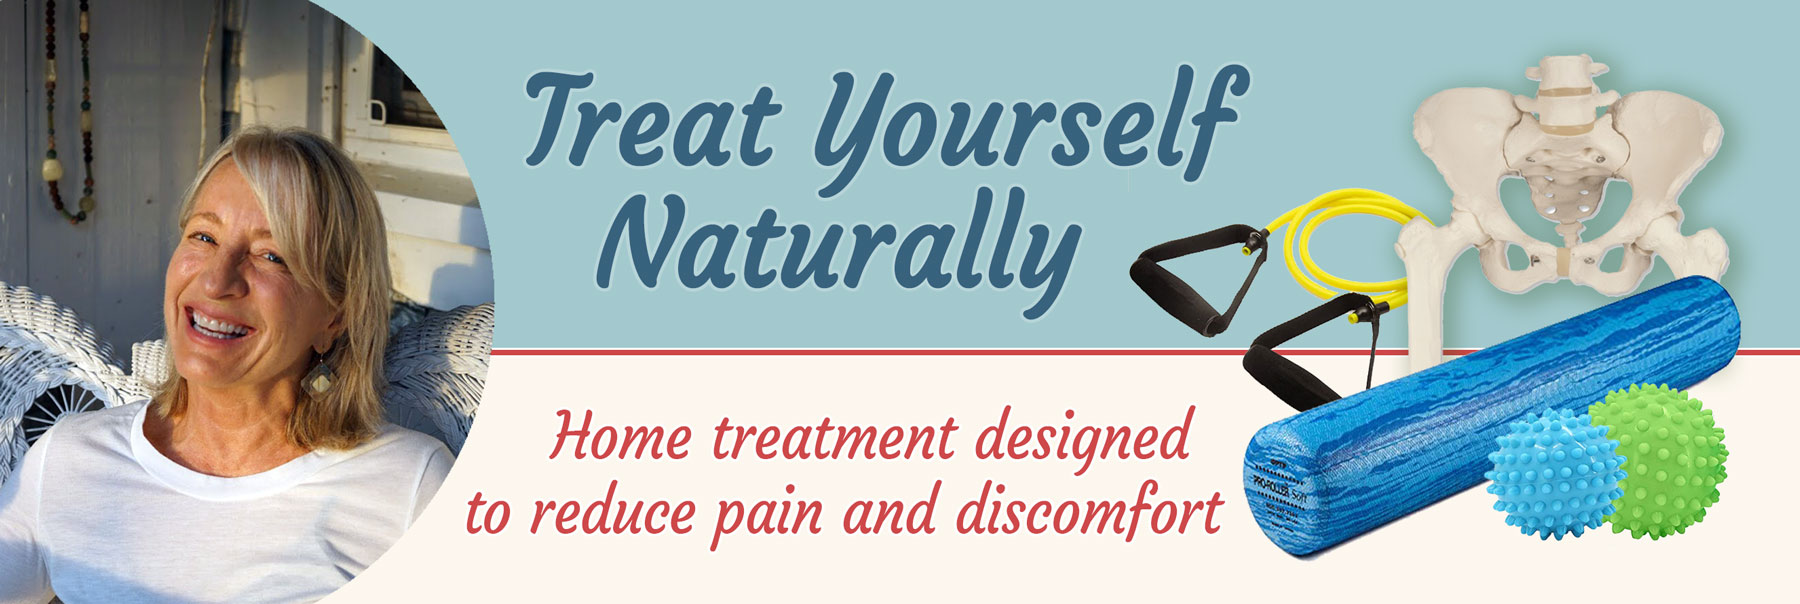 Treat Yourself Naturally | Home Treatment Designed to Reduce Pain and Discomfort